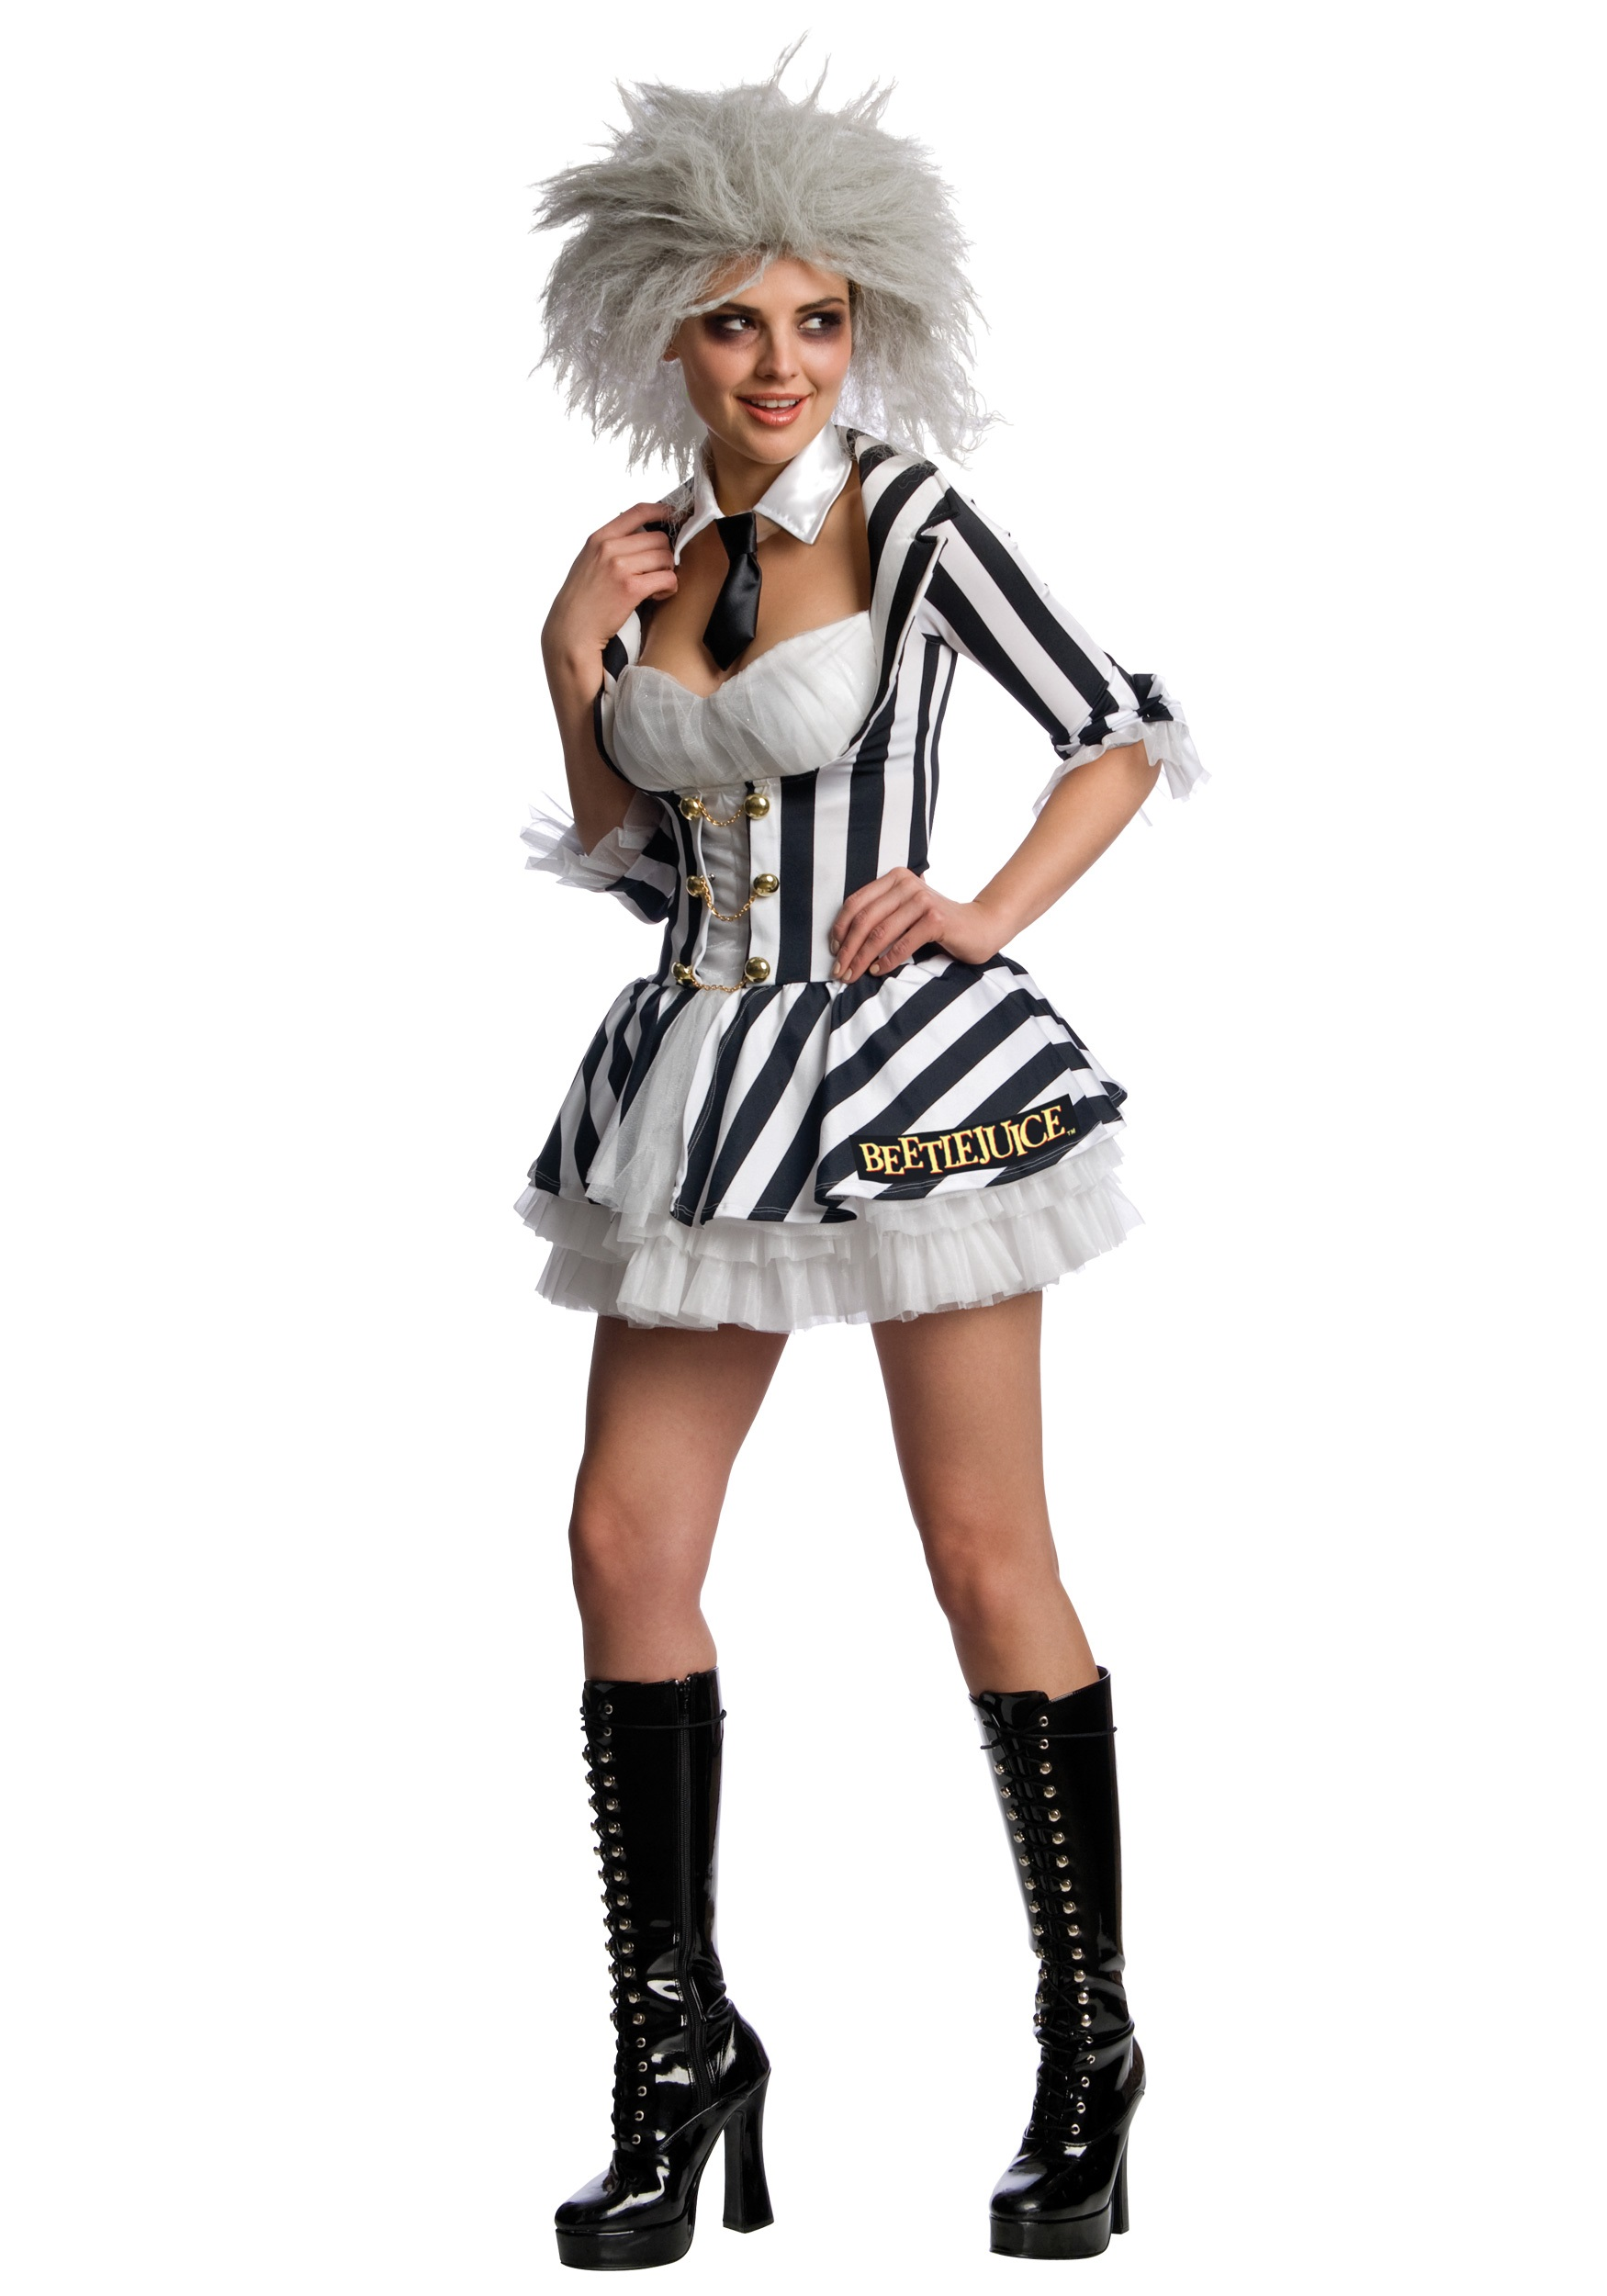 Sexy Ms Beetlejuice Costume - Women's Sexy, Scary Movie Costume Ideas